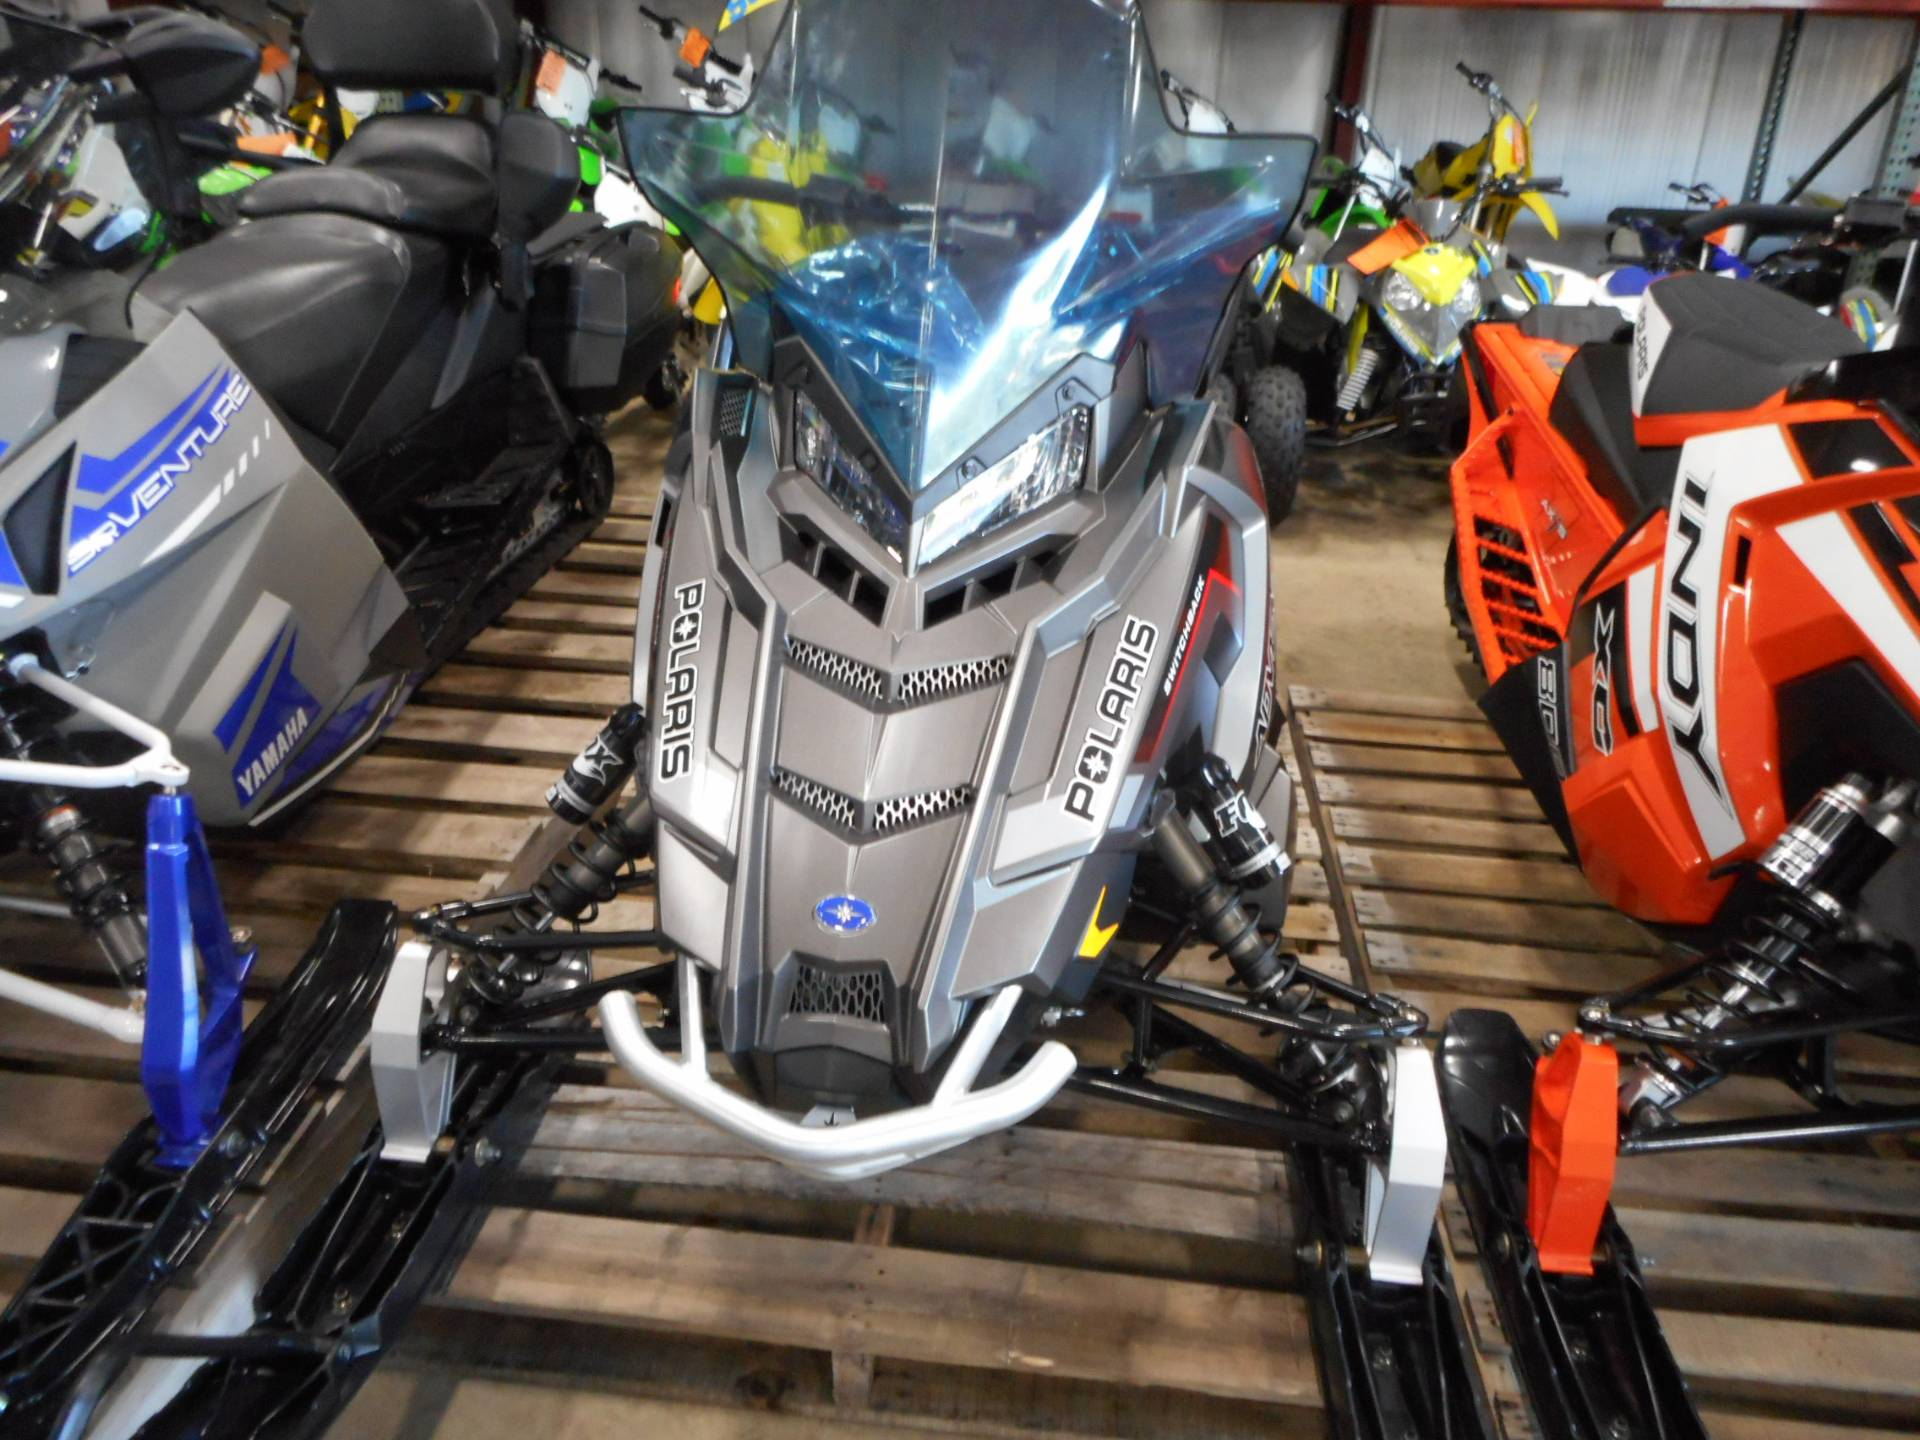 2019 Polaris 800 Switchback Adventure in Belvidere, Illinois - Photo 2